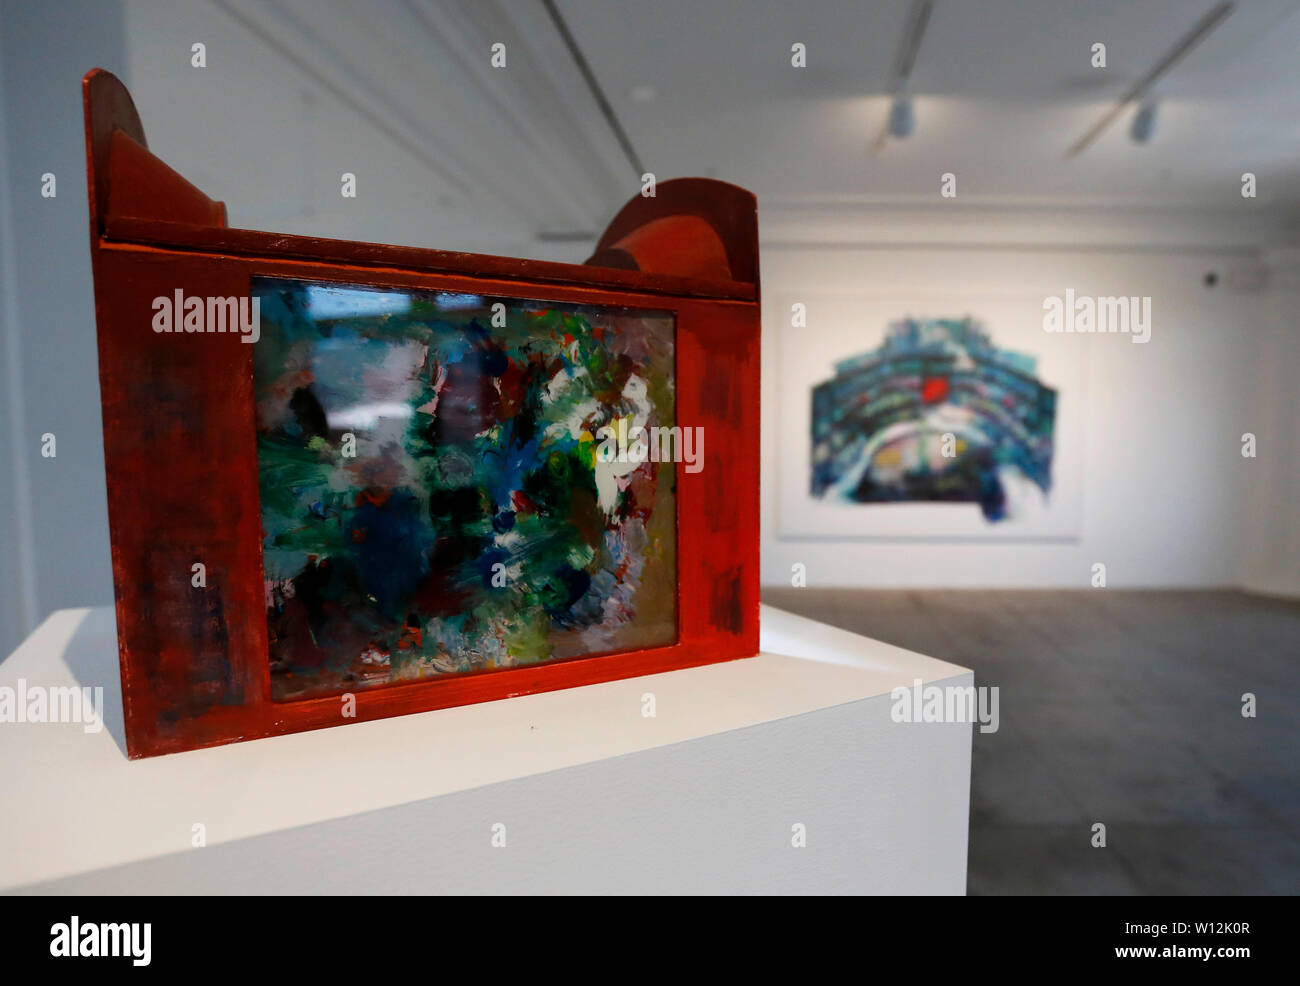 Los Angeles, USA. 28th June, 2019. Works of Argentine artist Guillermo Kuitca are displayed at Hauser & Wirth in Los Angeles, the United States, on June 28, 2019. Evoking the complex geometries and layered information of architectural plans and cartographic maps, Kuitca's theatrical paintings explore themes of dislocation. Credit: Li Ying/Xinhua/Alamy Live News - Stock Image